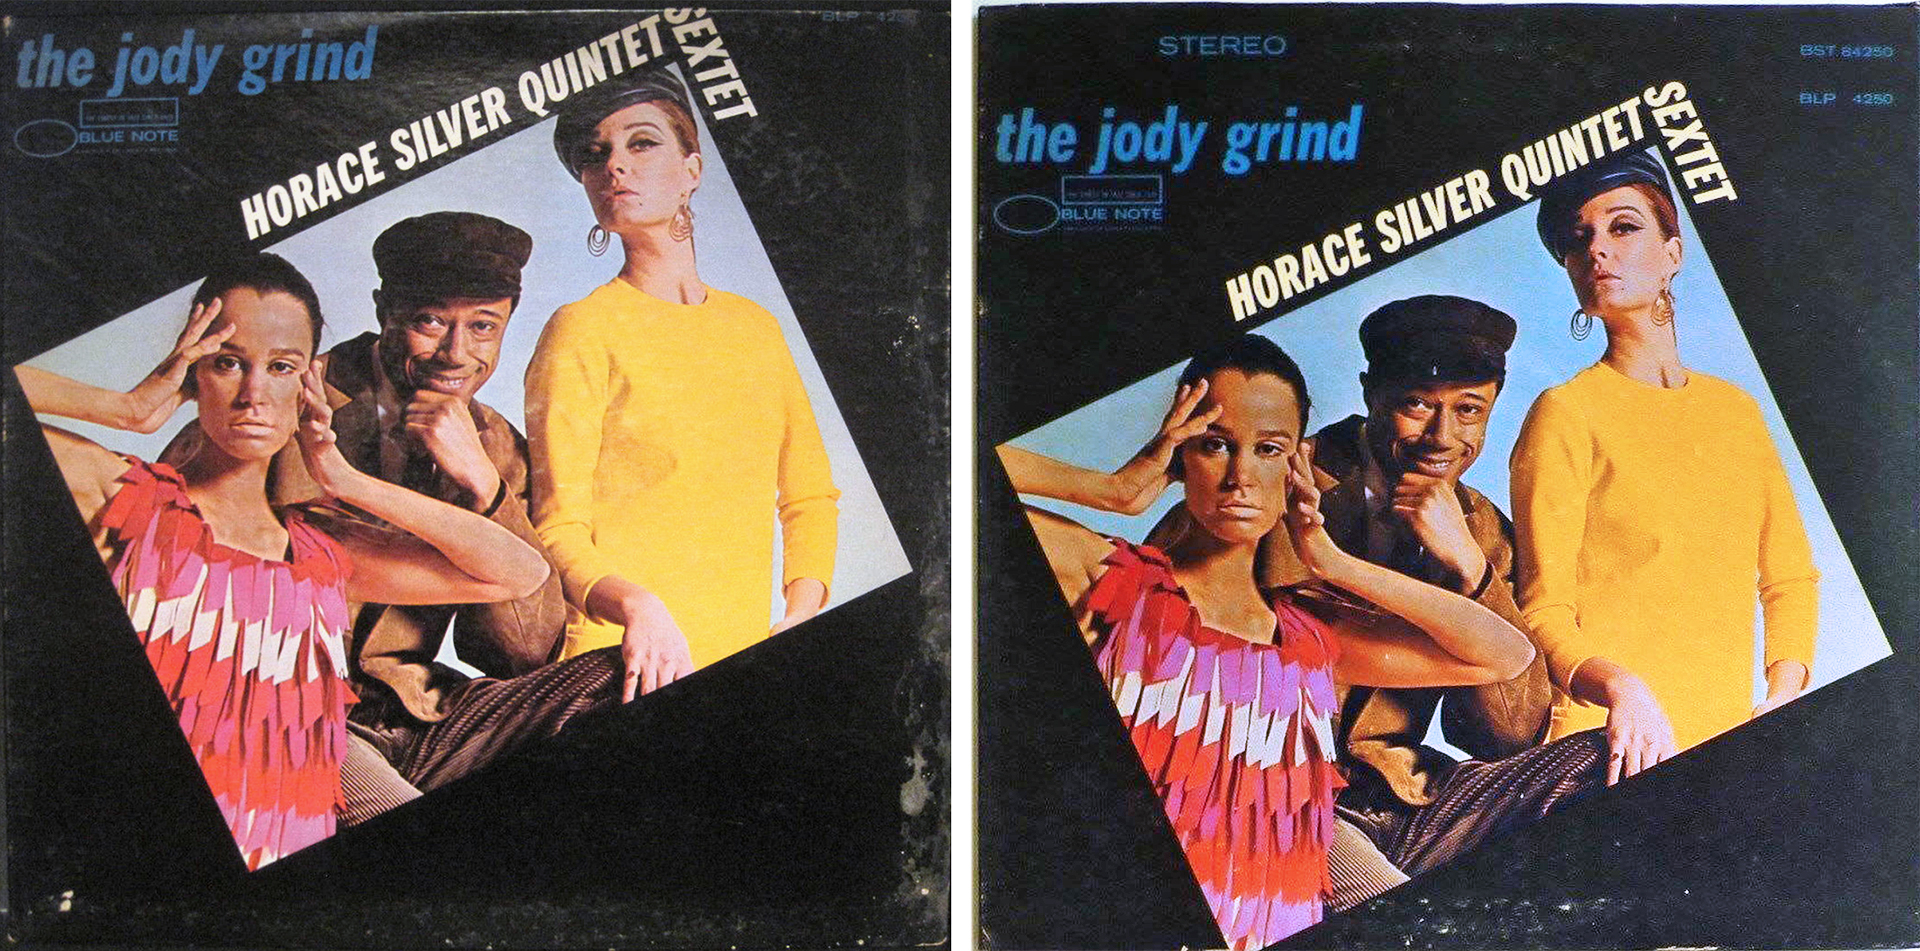 jody-gring-cover-mono-stereo